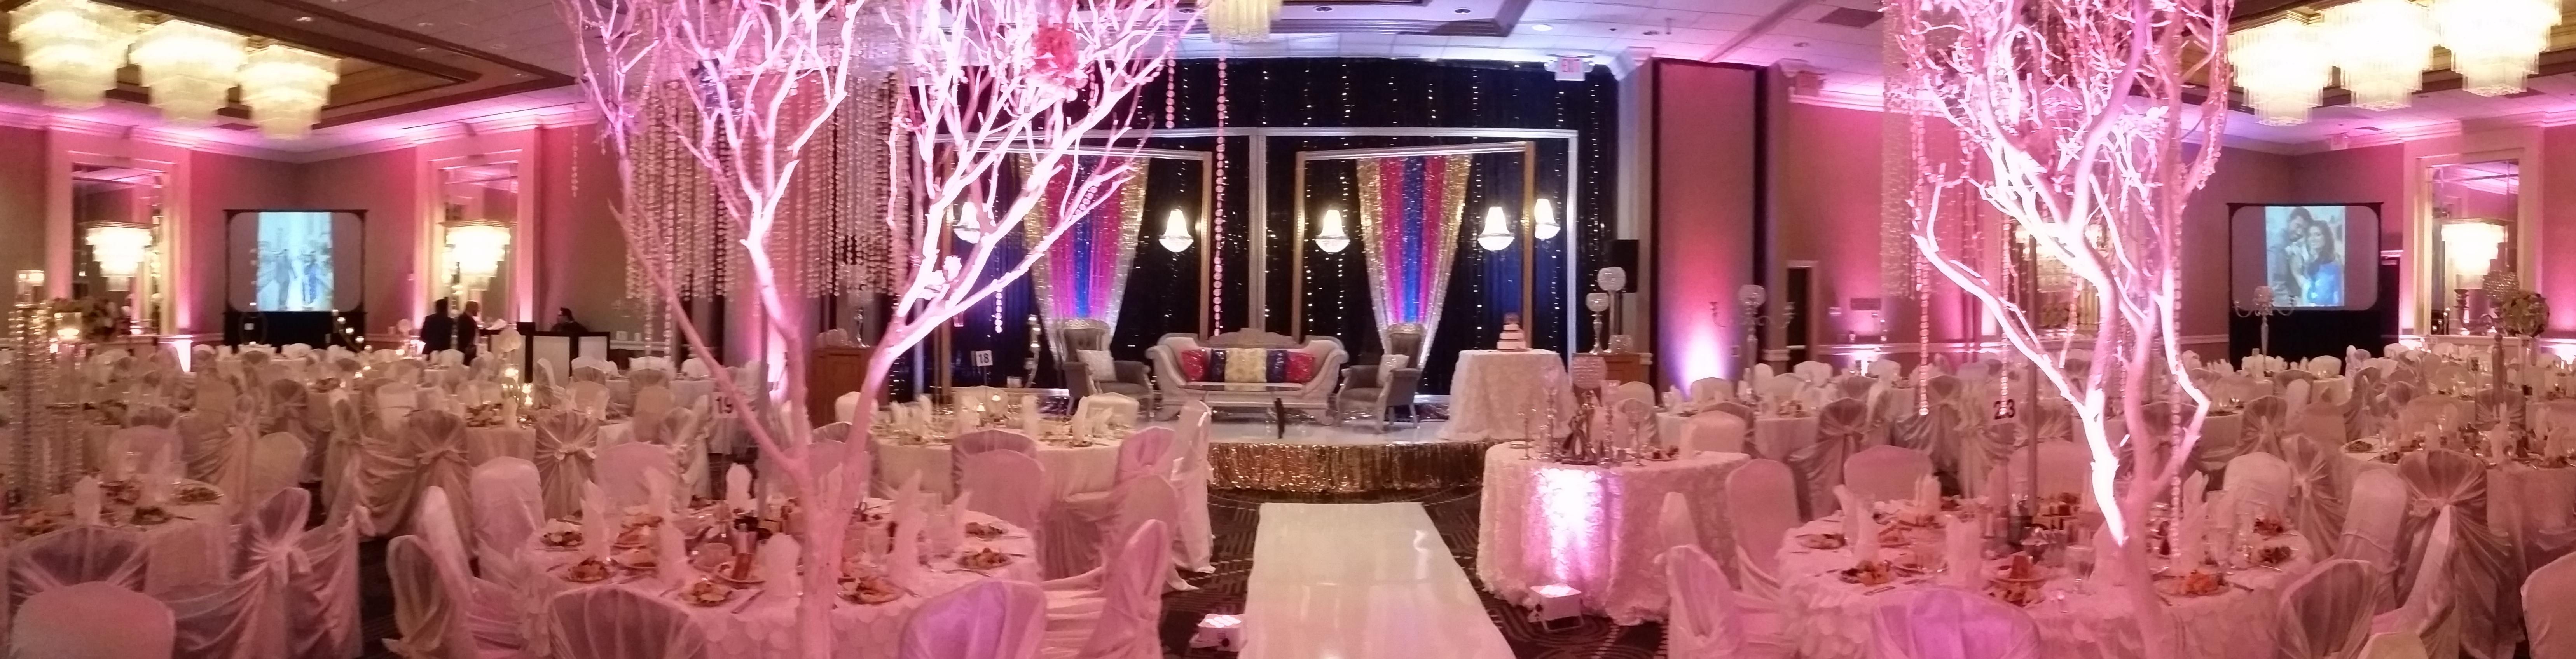 Houston Weddings, Weddings in Houston, Big Screen Rear Projection for Houston Audio Visual, Houston A/V, Up-Lighting, Houston Indian Wedding, Awesome Music Entertainment, Awesome Event Pros, Awesome Lighting Decor, AME DJs, Sonido DJ Sammy de Houston